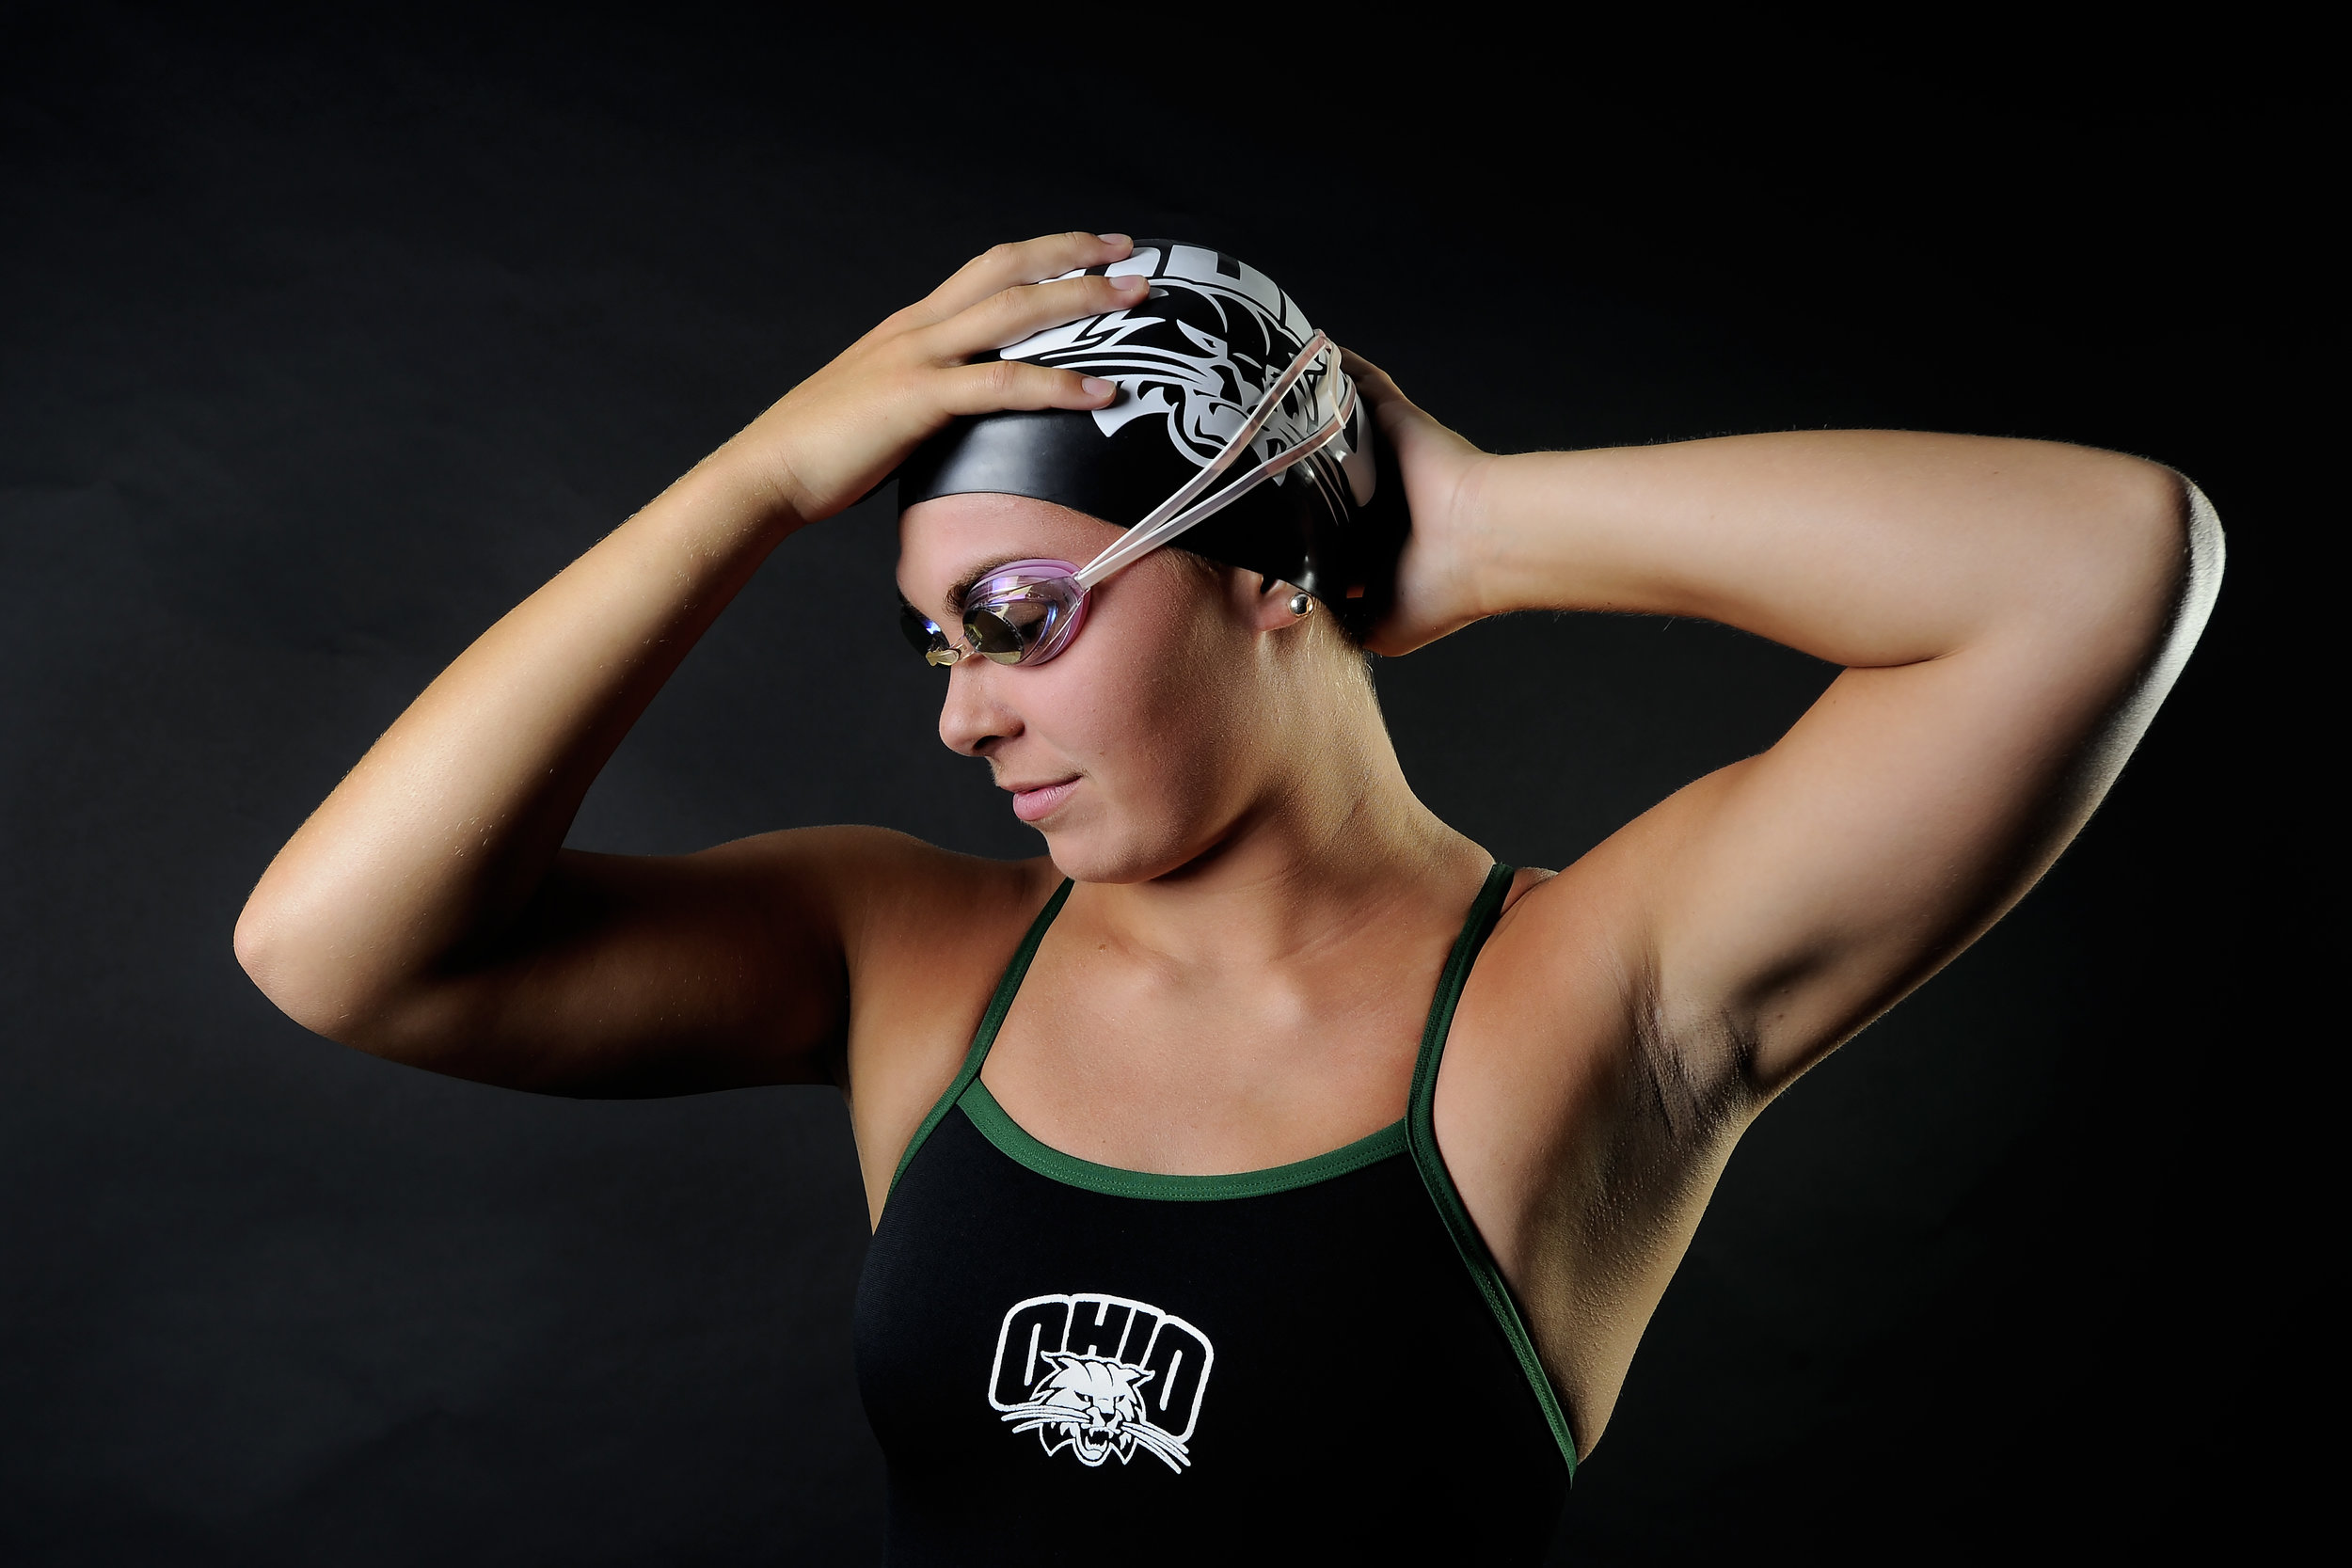 Ohio Bobcats freshman swimmer Samantha Glass poses for a portrait on September 9, 2017, in Athens, Ohio. Glass, hailing from Villa Hills, Ky., specializes in the 200 and 400 Individual Medley.